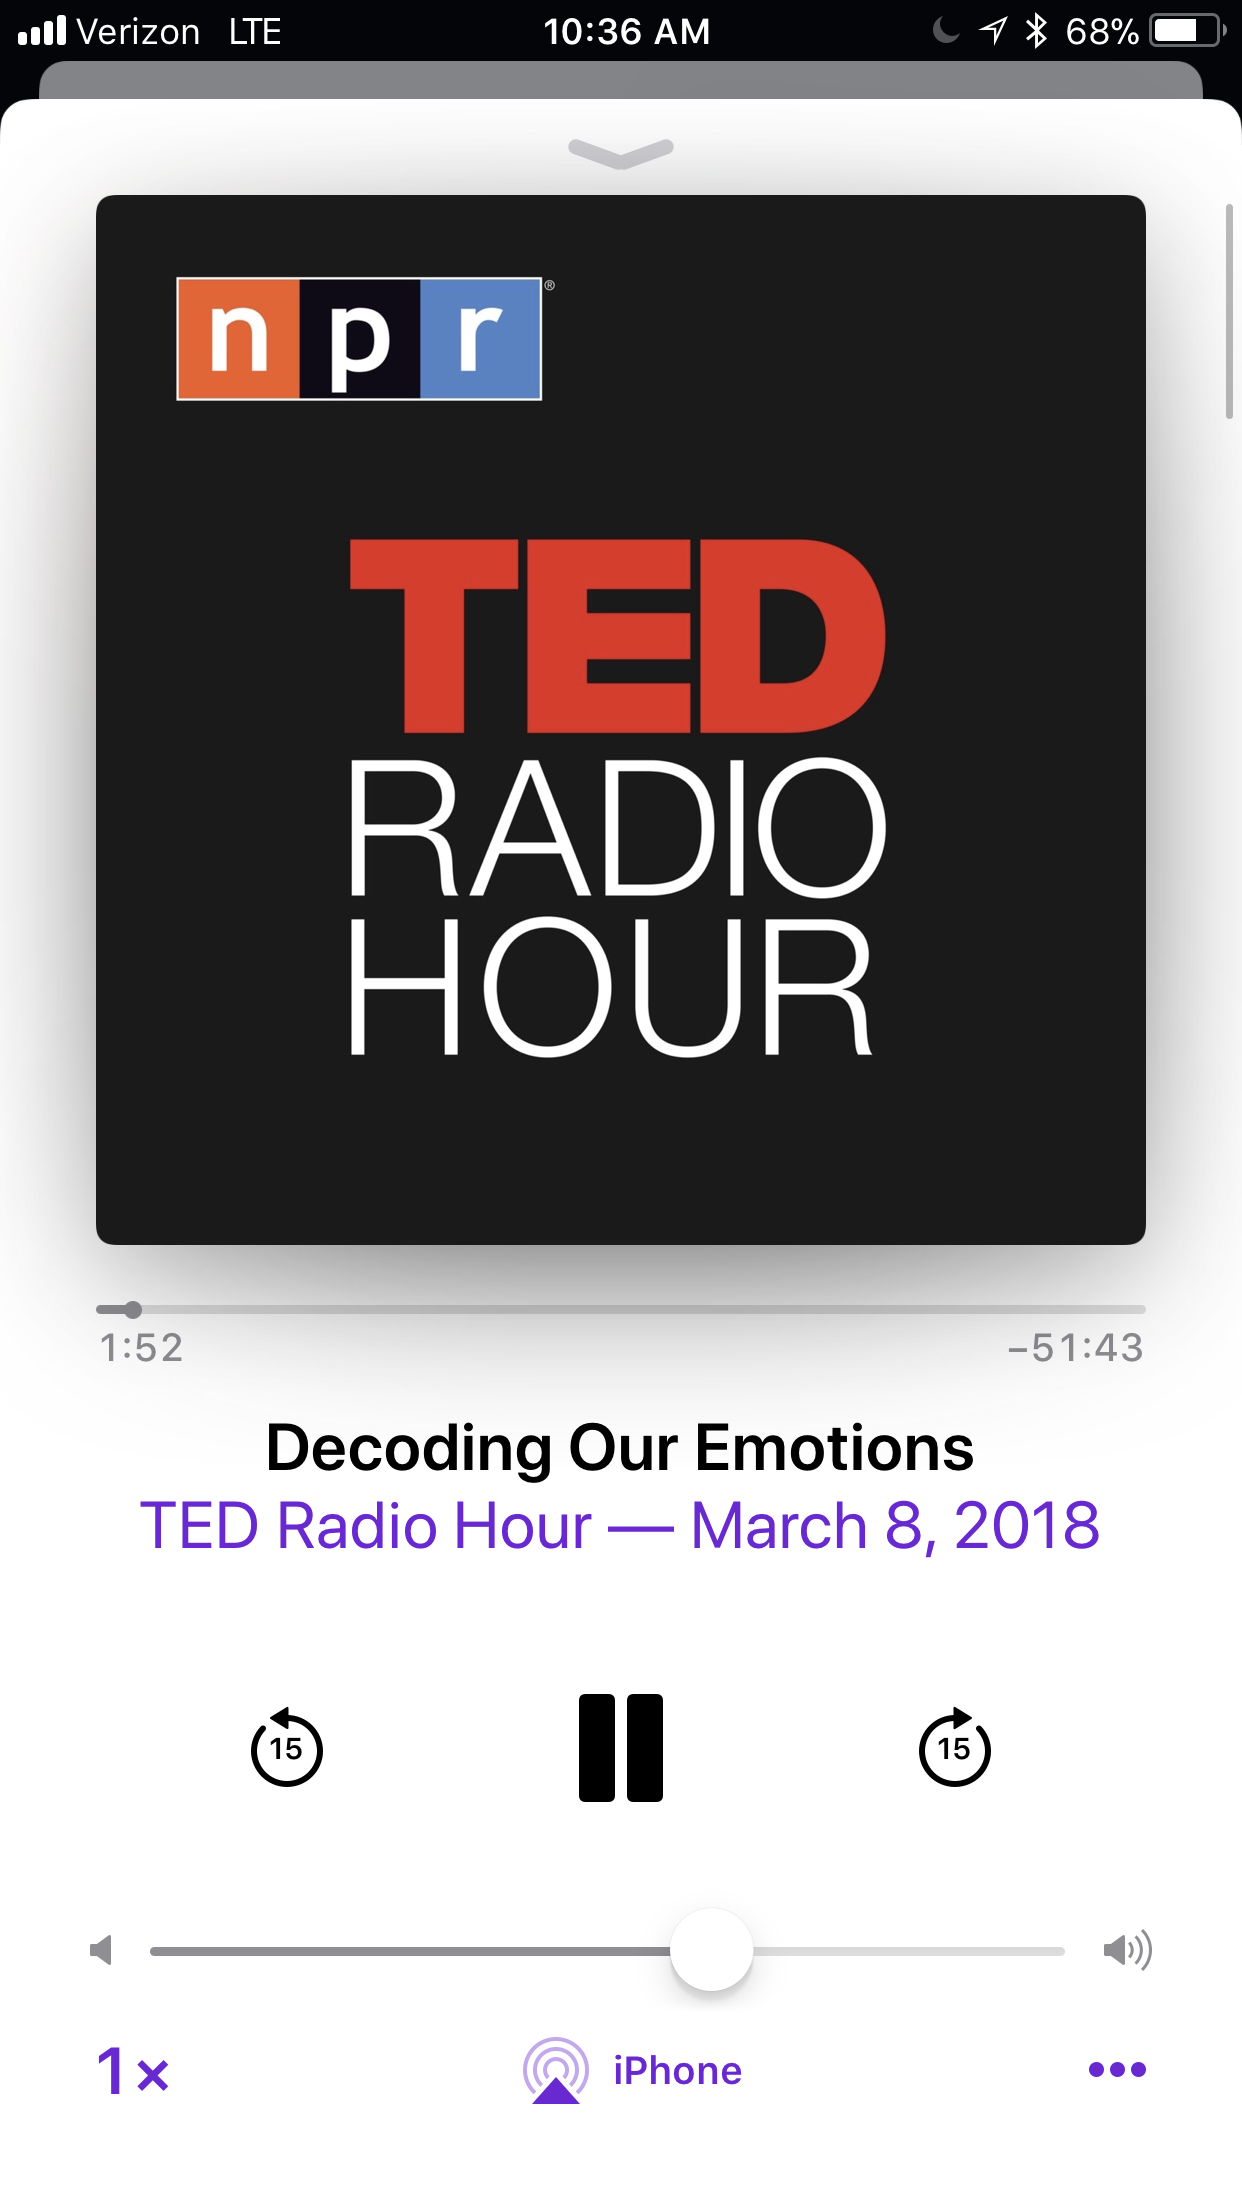 Where do our emotions come from? - This podcast was fascinating from an informational standpoint, teaching words in different languages that refer to emotions that are culturally-specific. It was fascinating to learn about the root of our emotions in our brains.